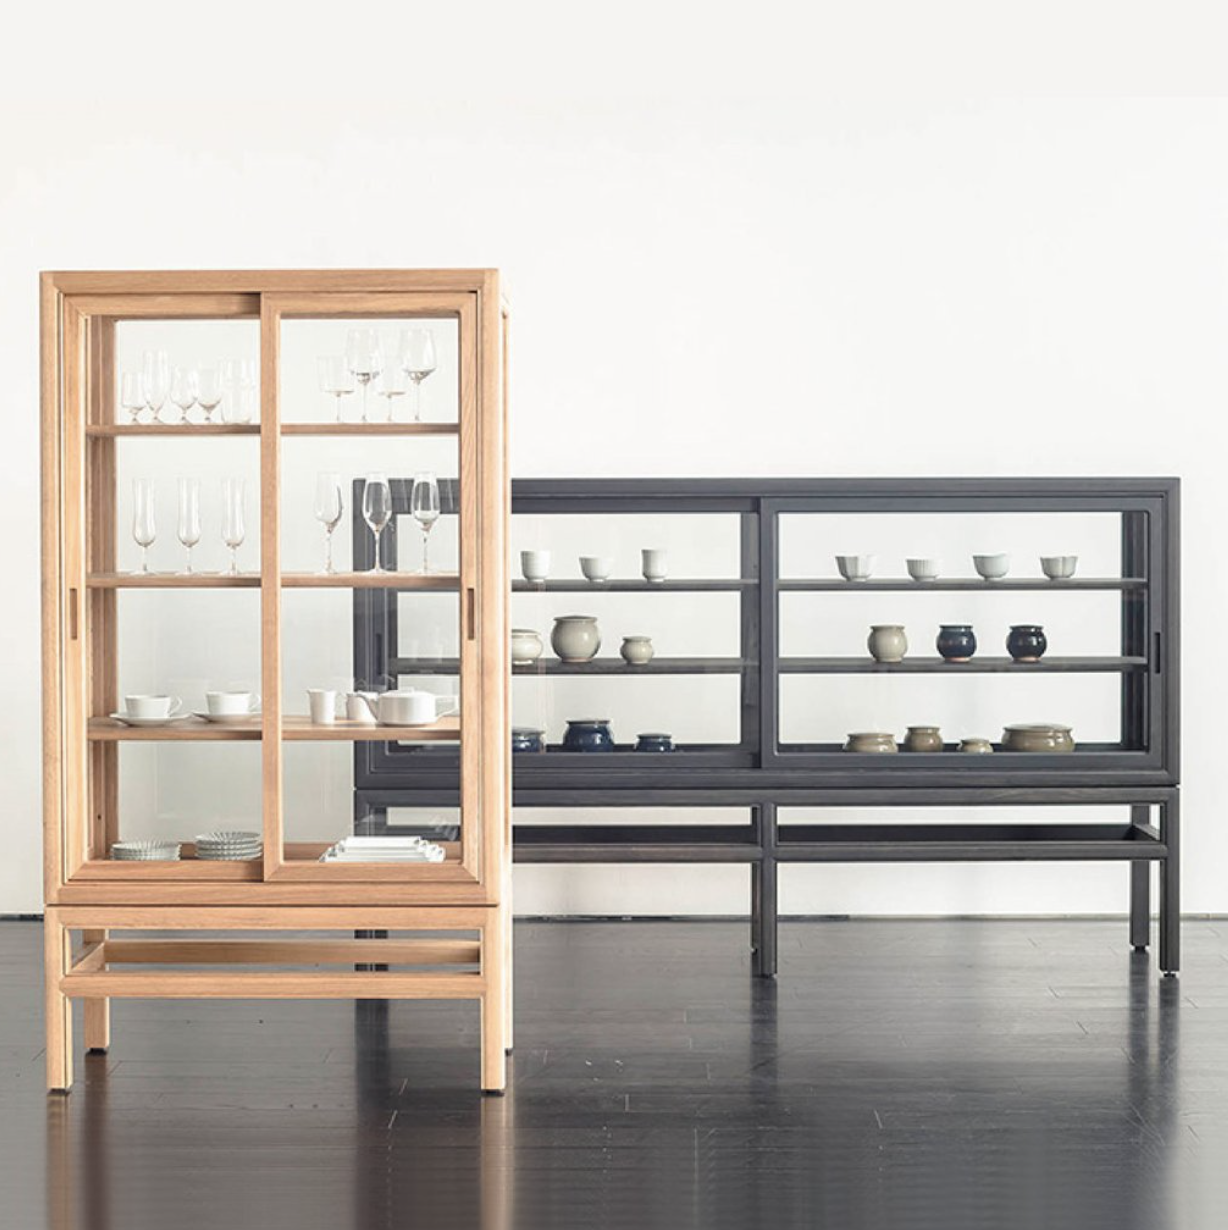 Museum cabinets for private collection available at OOKKUU